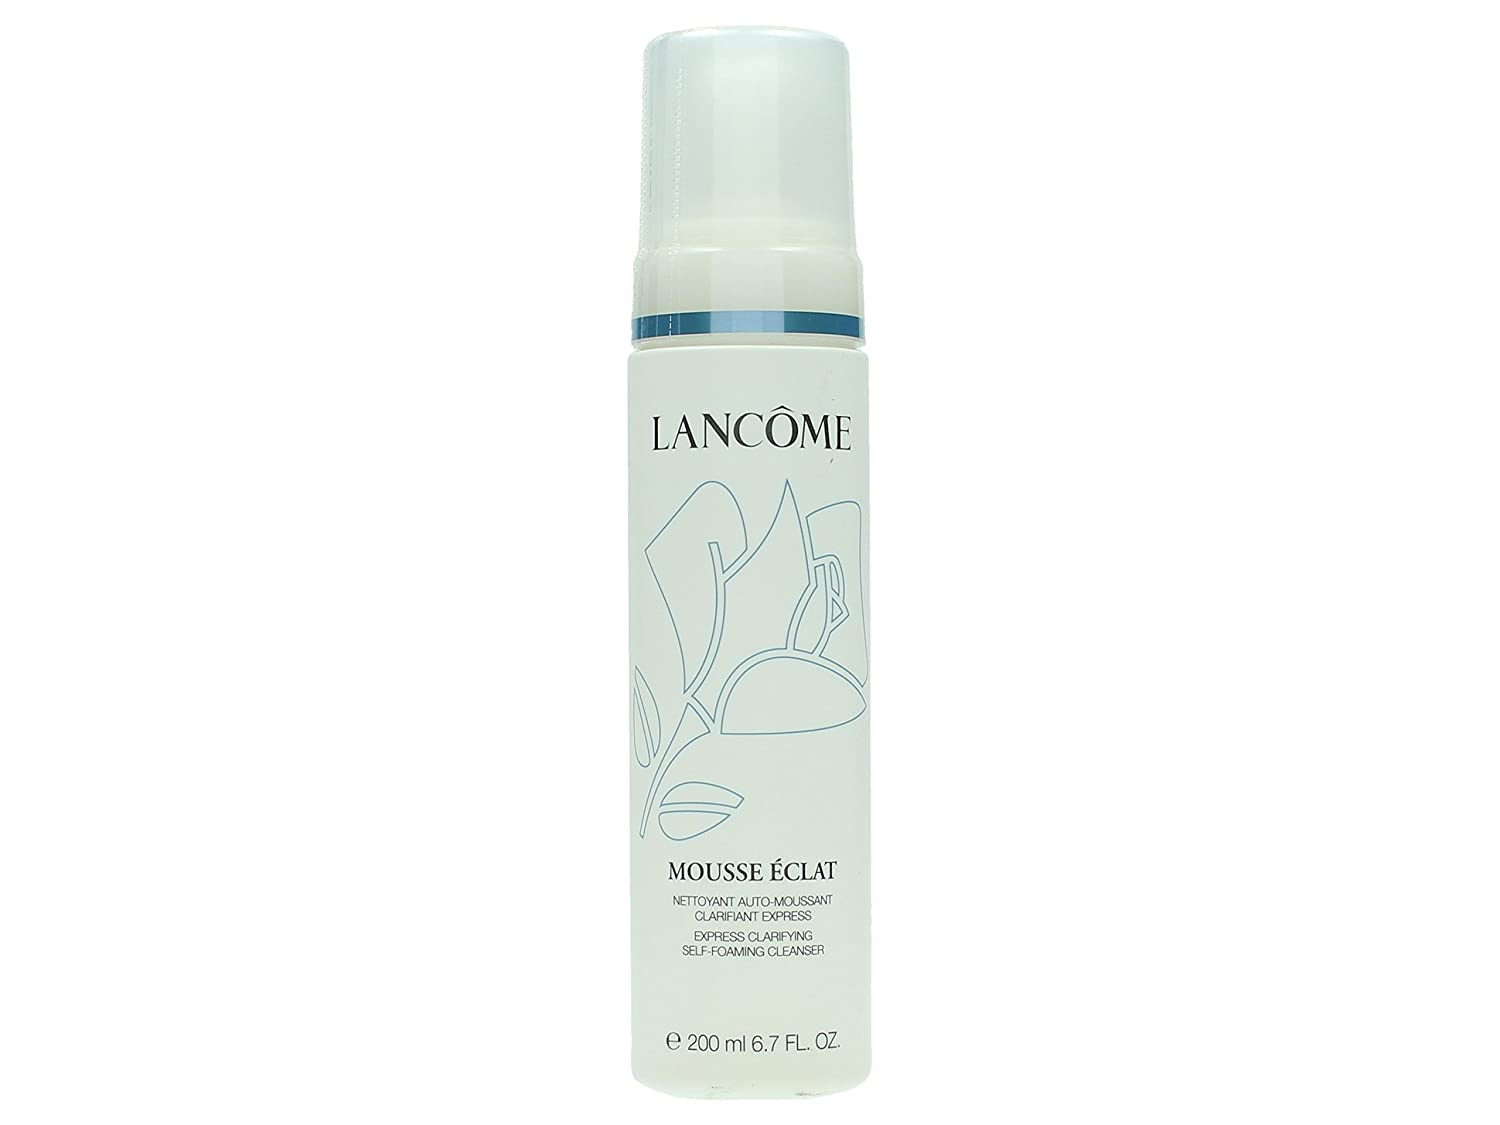 Lancome Mousse Eclat, Express Clarifying Self-Foaming Cleanser, Donna, 200 ml Lancome Italy KL43030